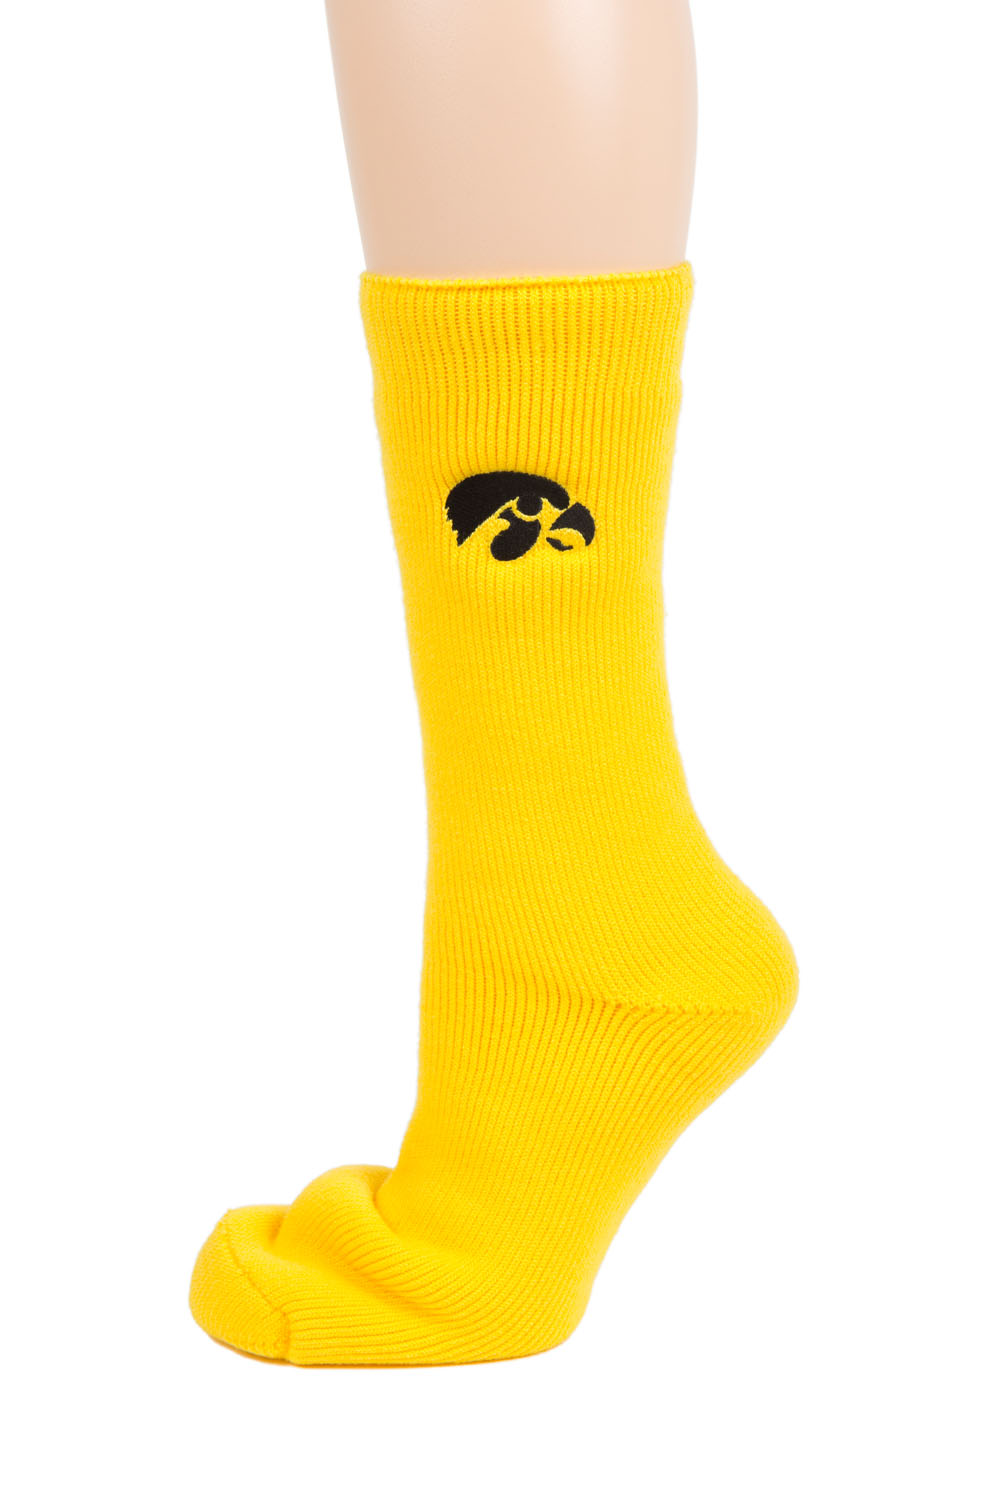 Iowa Hawkeye Gold Thermal Sock by Donegal Bay